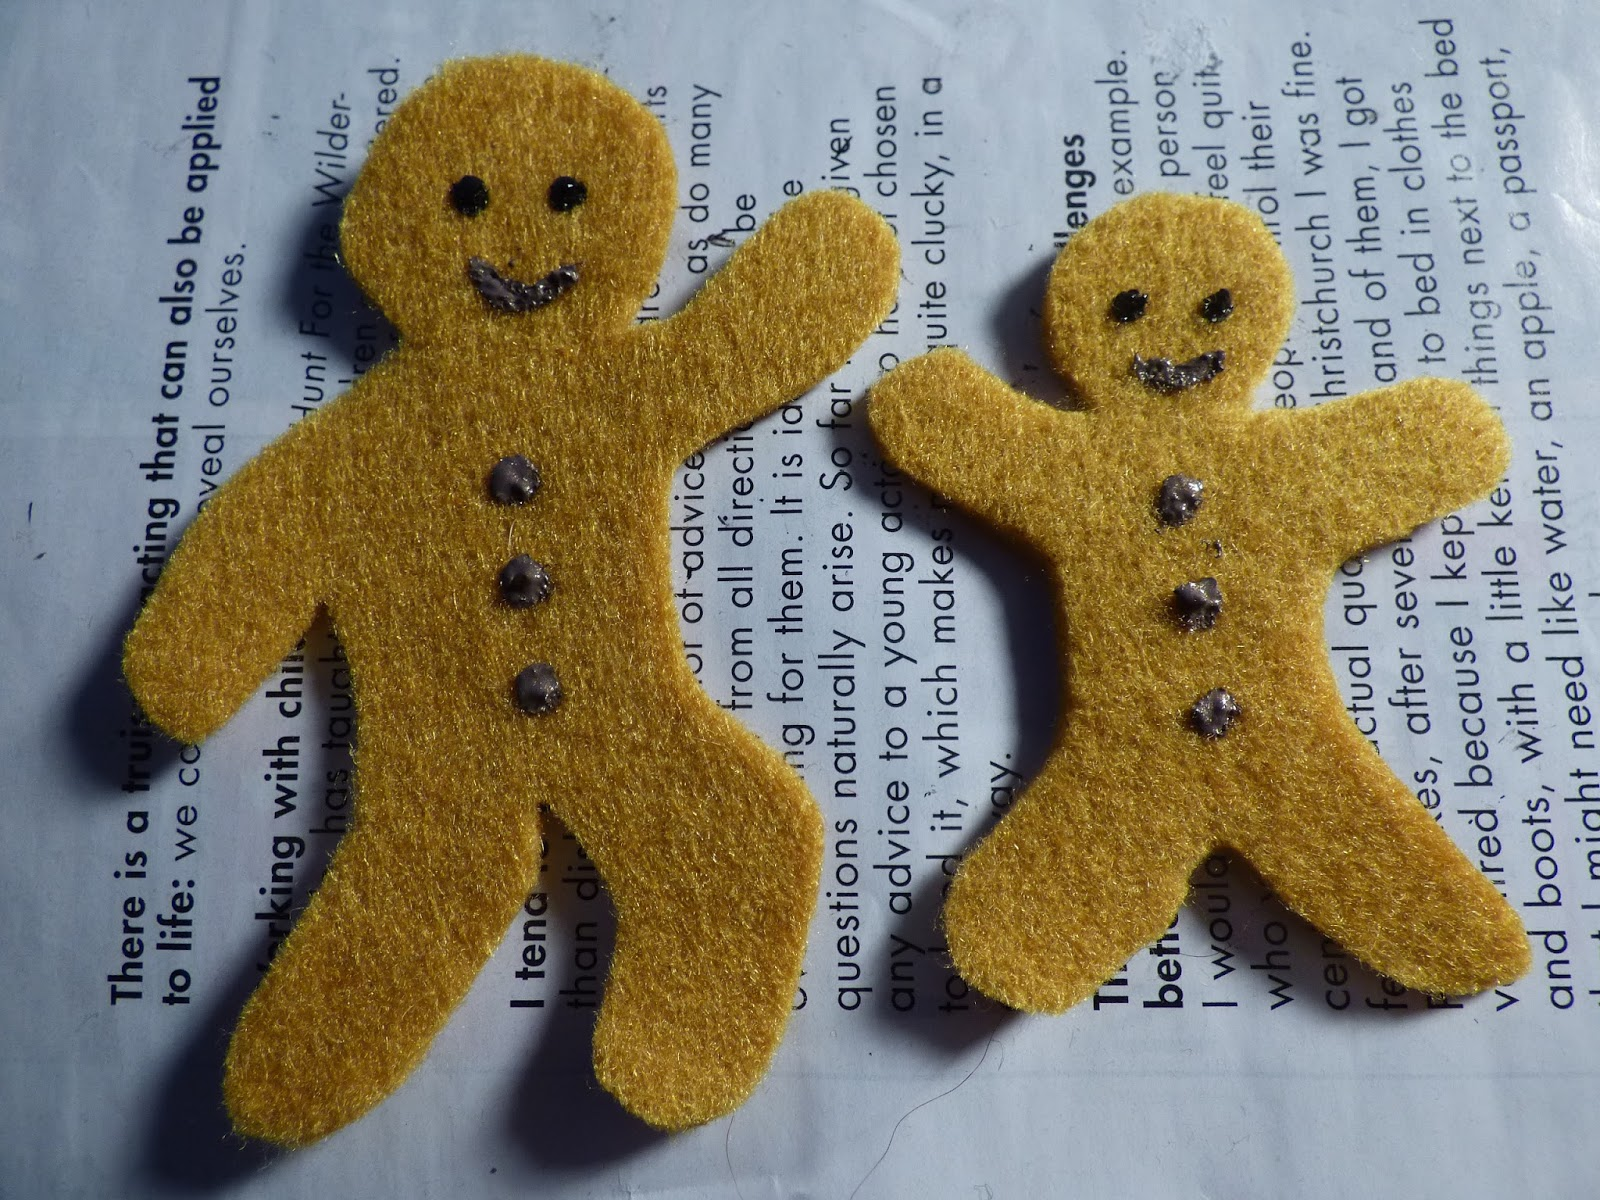 Needlefelted Fairytales The Gingerbread Man